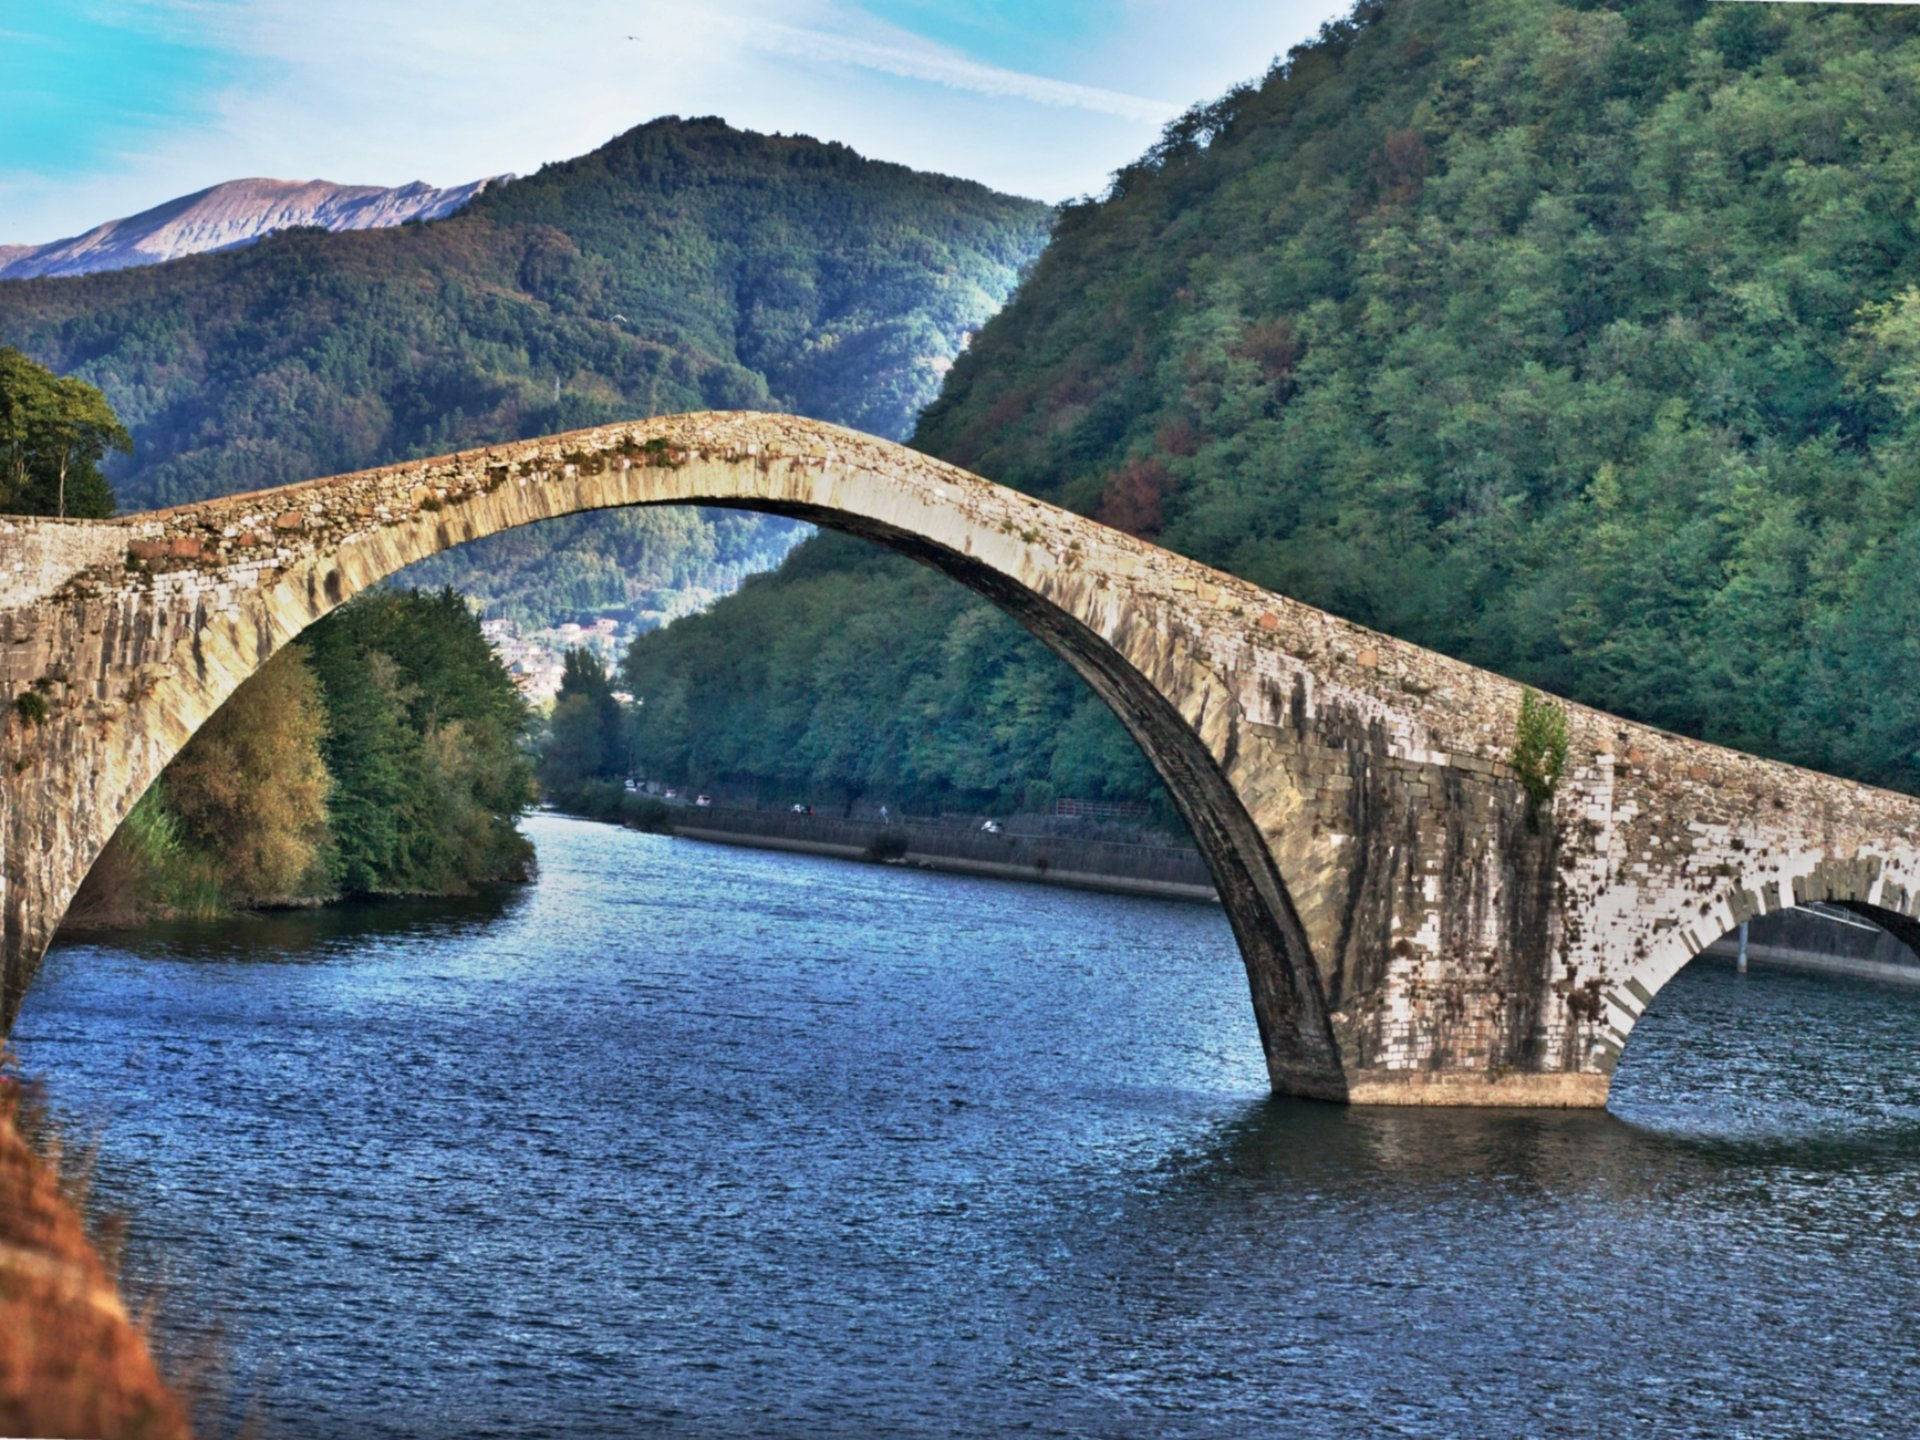 The devil's bridge